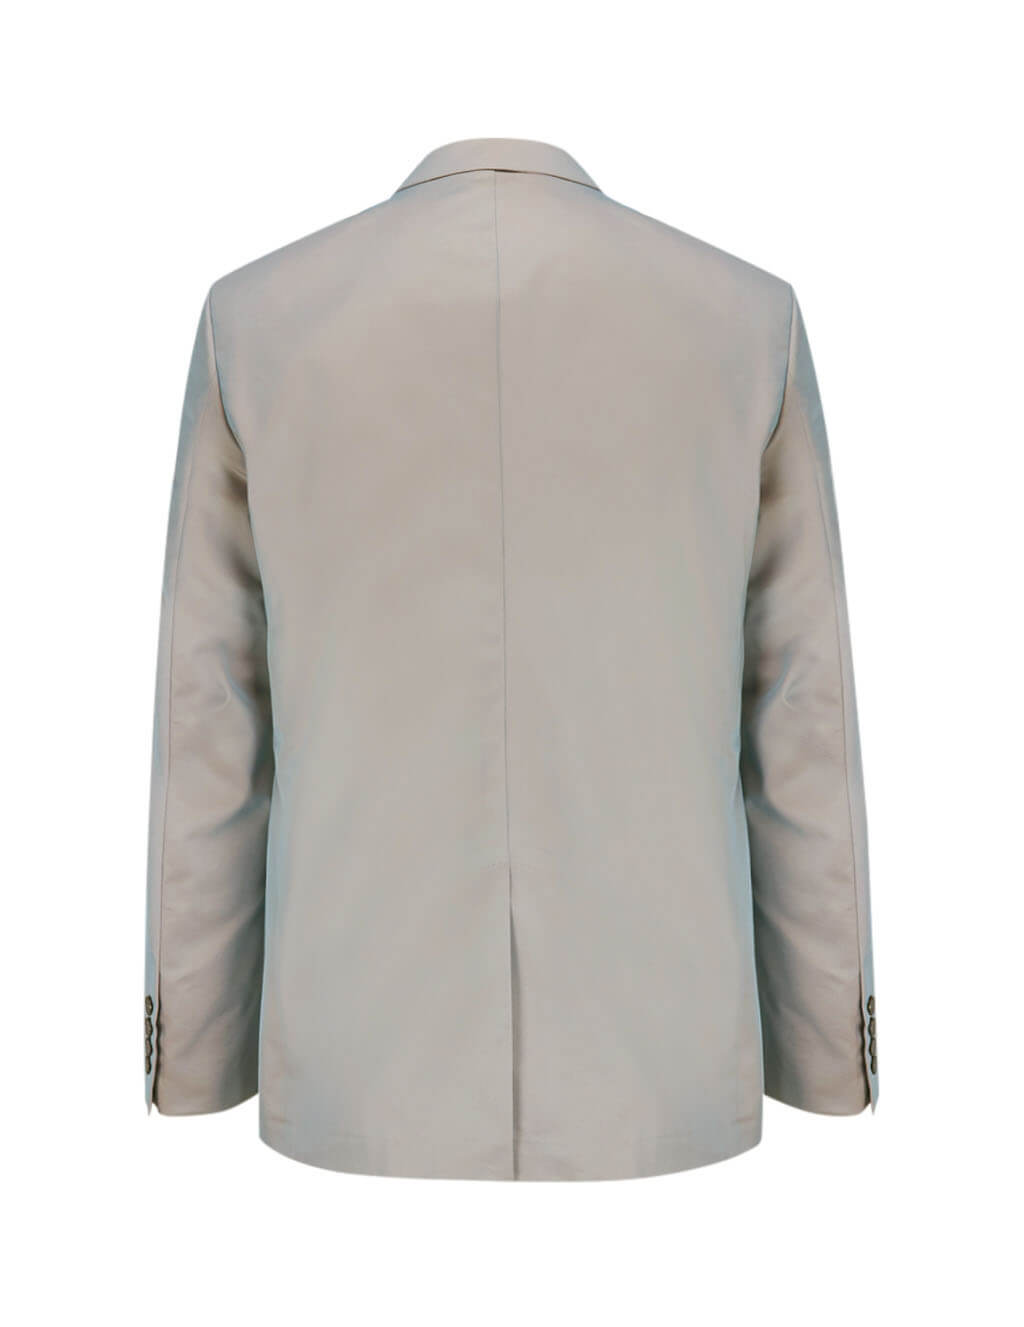 Givenchy Men's Grey Technical Iridescent Jacket BM307812M8 840